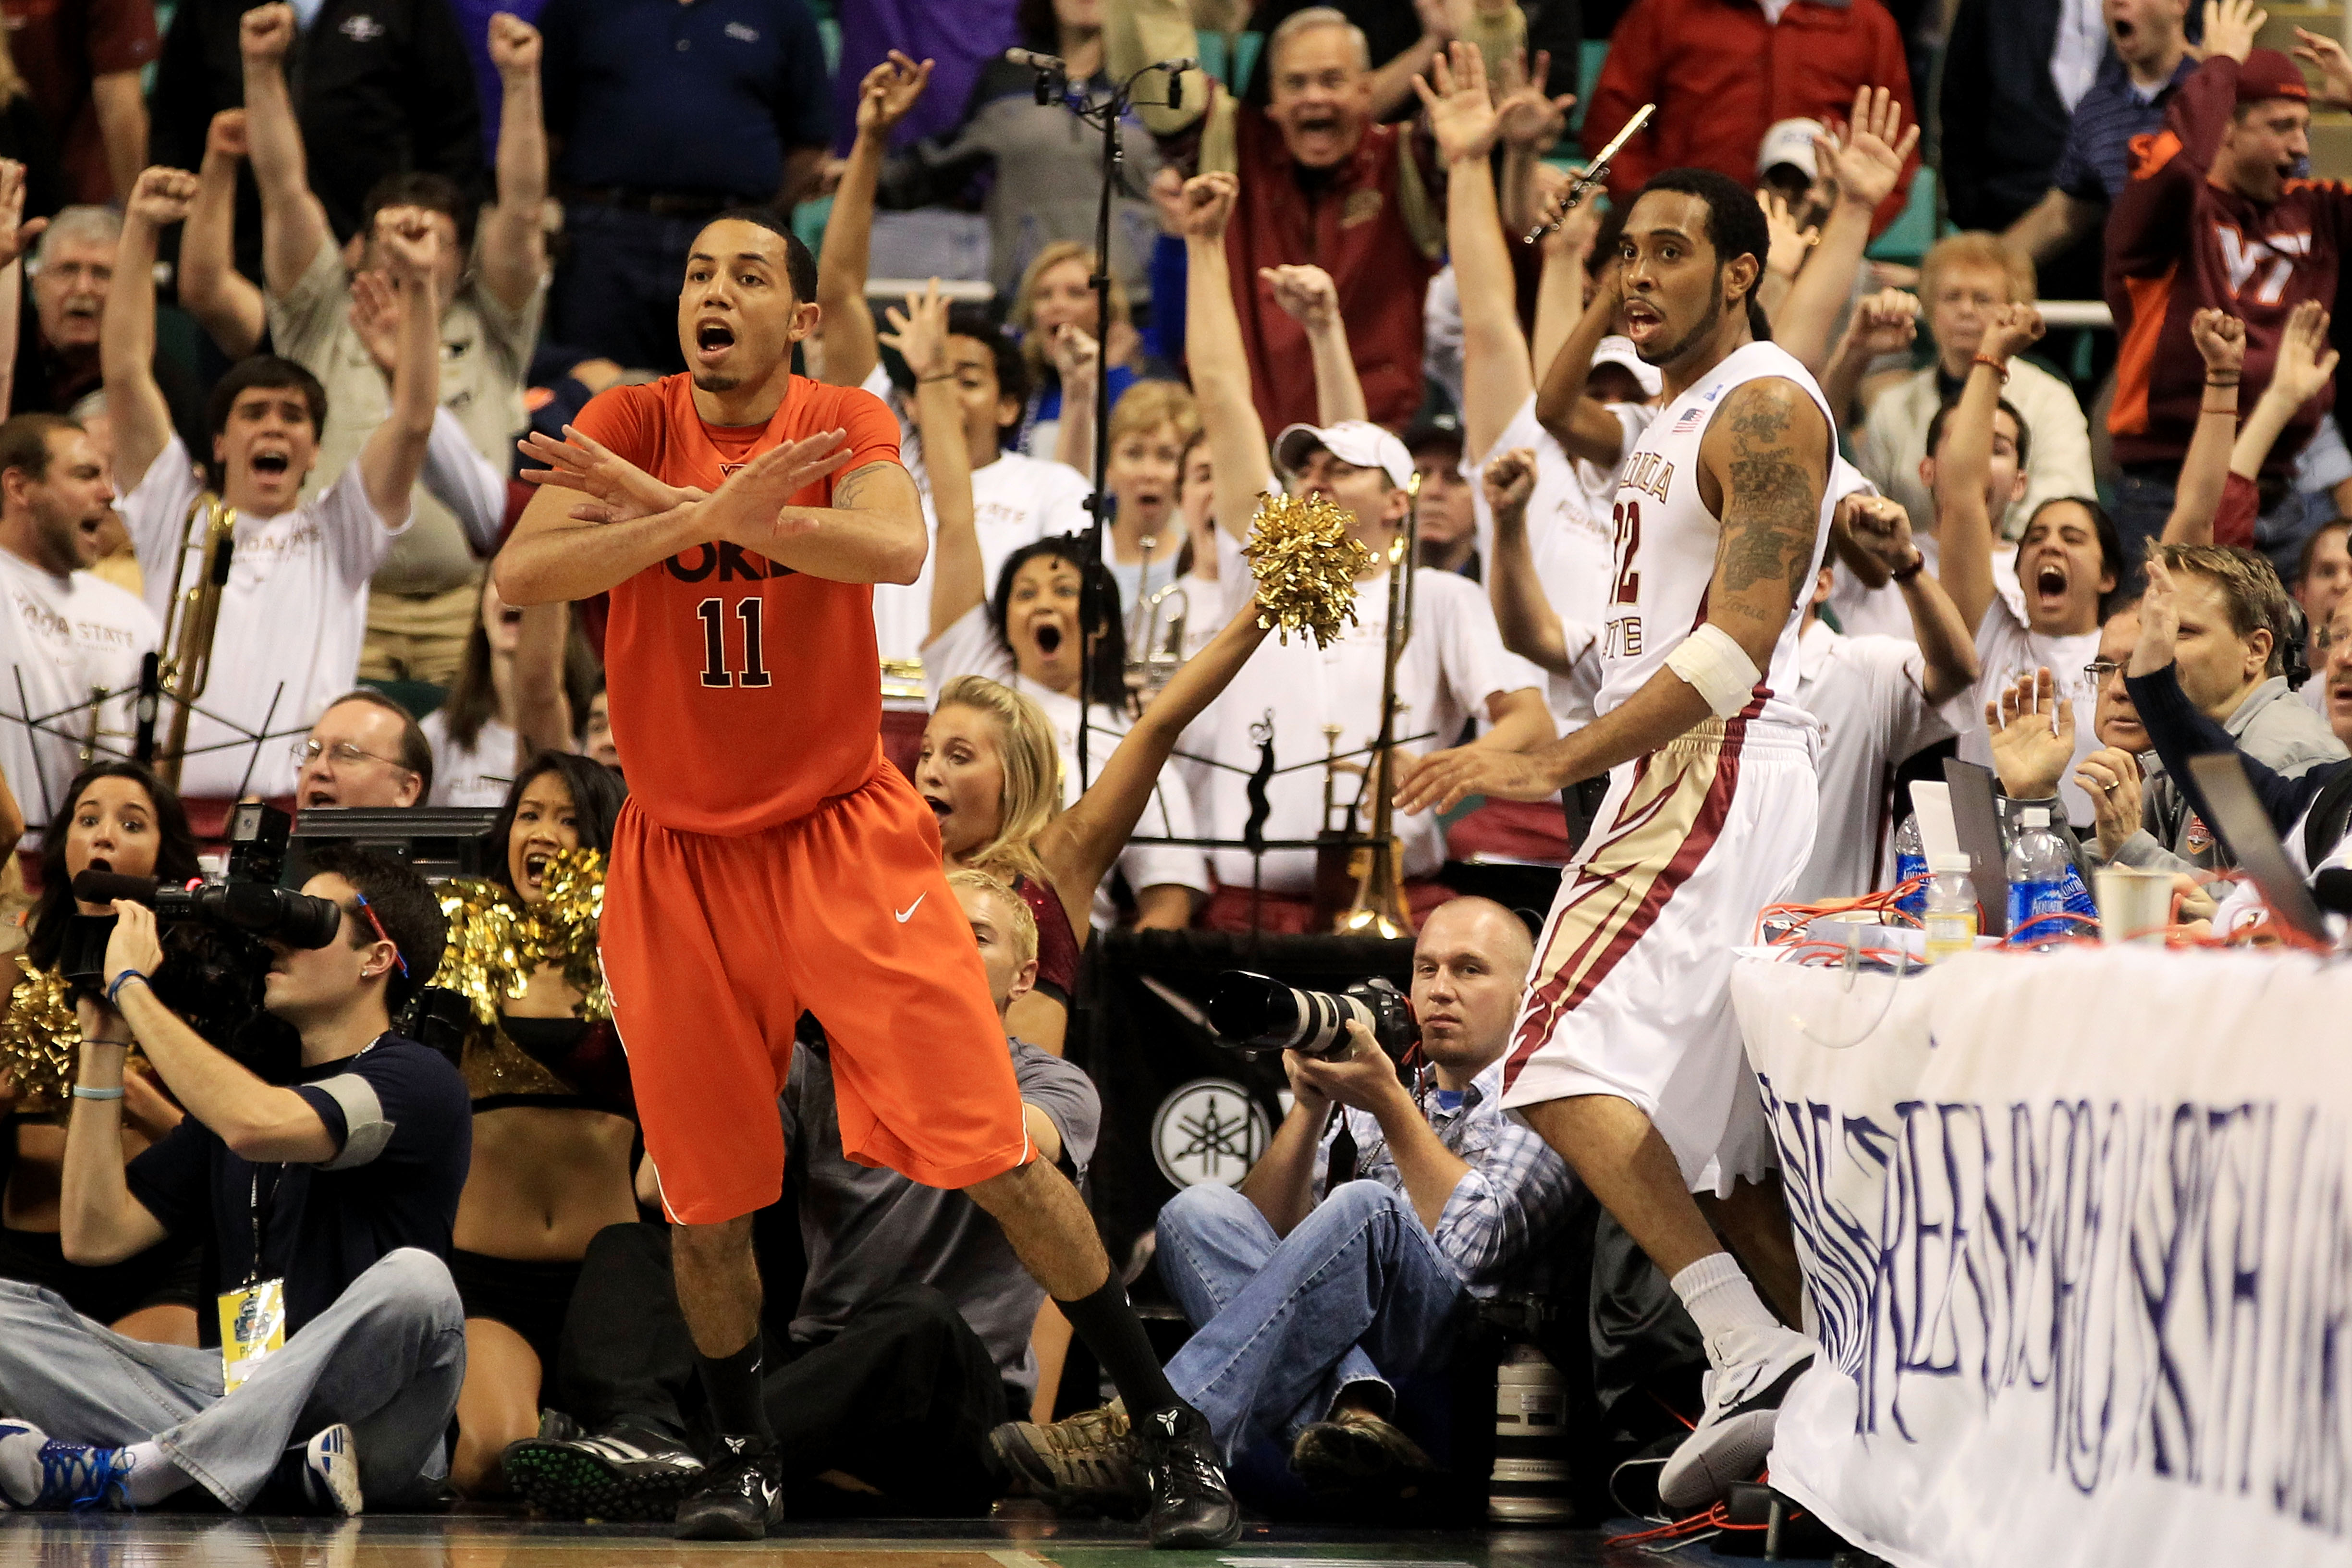 GREENSBORO, NC - MARCH 11:  Erick Green #11 of the Virginia Tech Hokies reacts to a shot at the buzzer by Derwin Kitchen #22 of the Florida State Seminoles that would have won the game during the quarterfinals of the 2011 ACC men's basketball tournament a